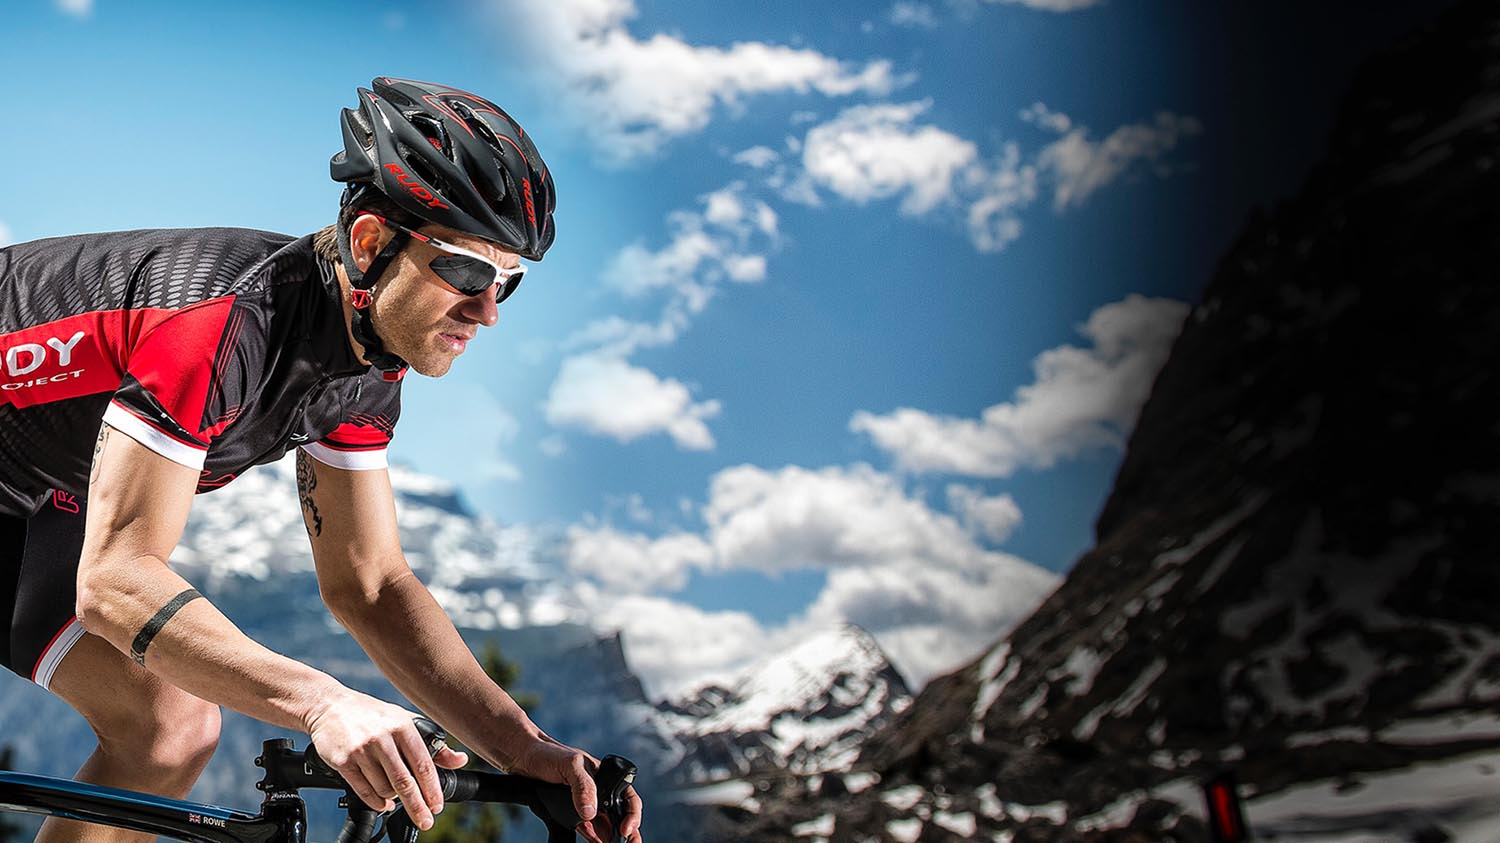 Rudy Project technical eyewear for athletes is available at Artisan Eyeworks in Ashland, Oregon.